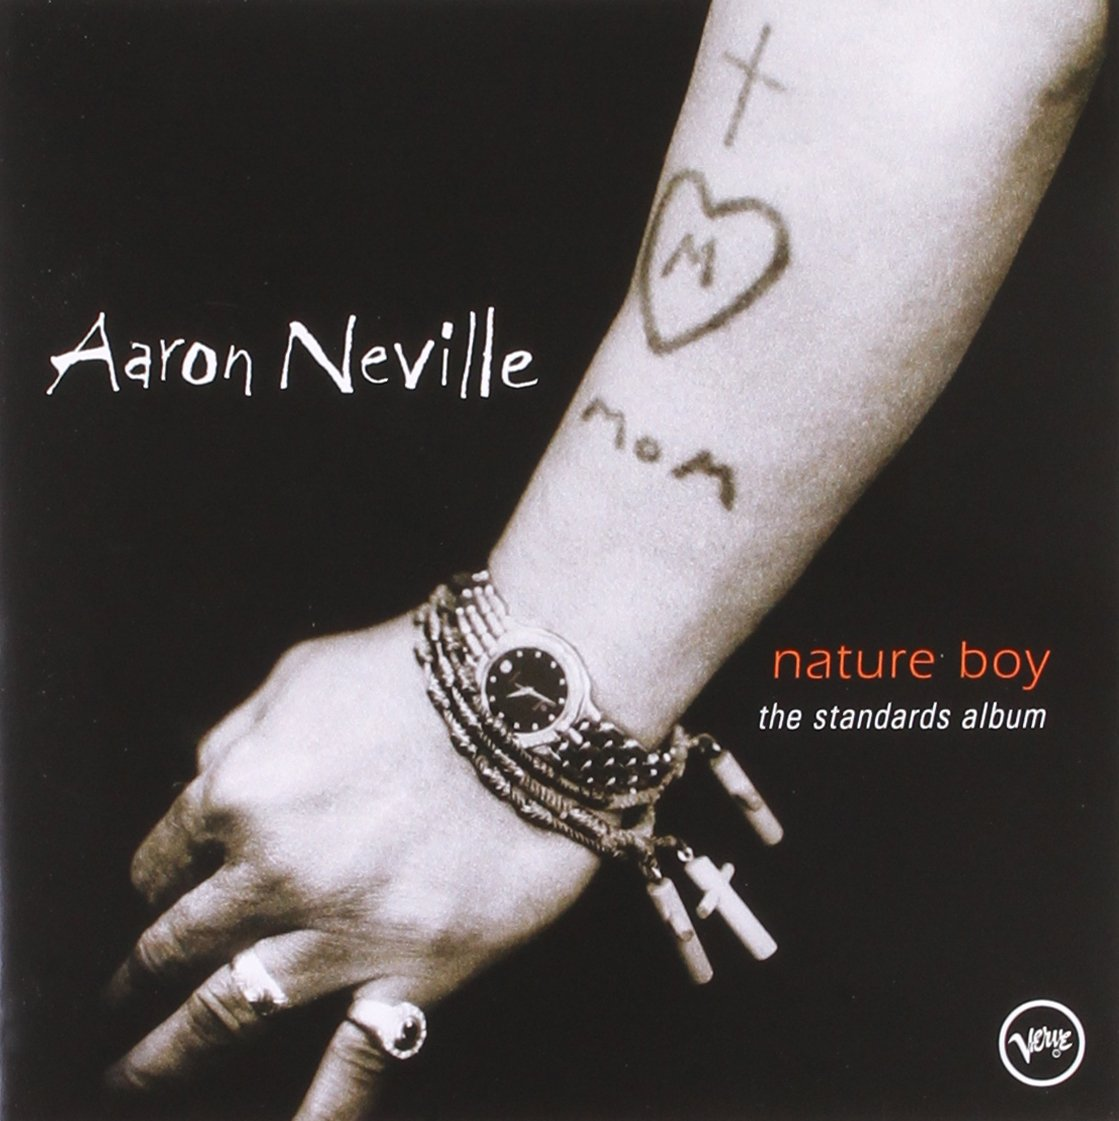 Aaron Neville - Nature Boy: The Standards Album - Amazon.com Music